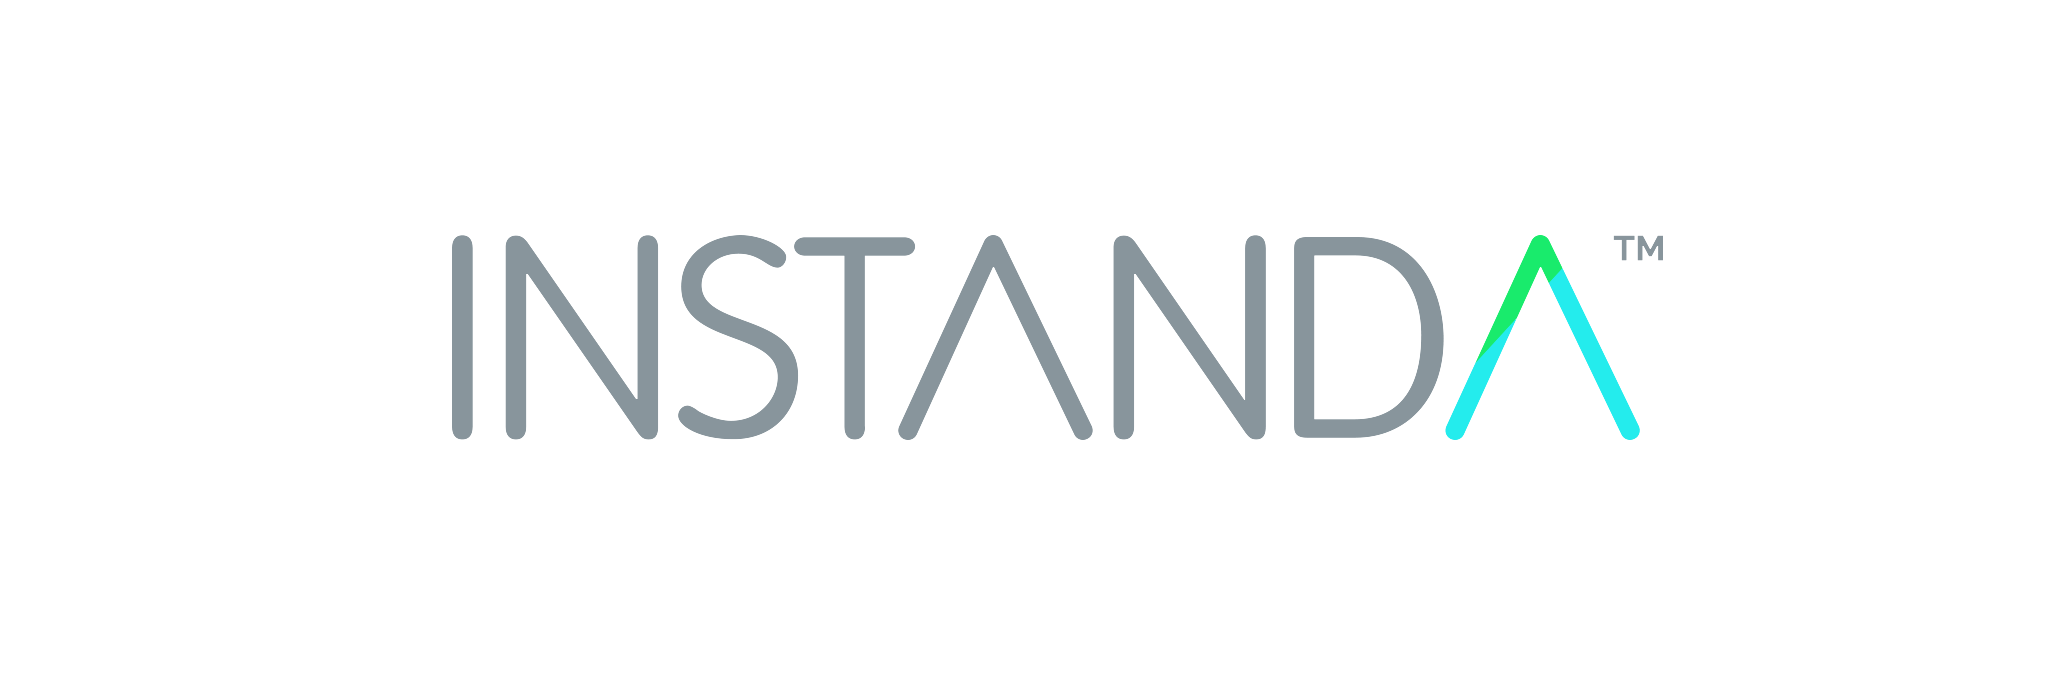 Instanda Launches New Marketplace, Allowing Insurers Access to Over 200 Integrated Platforms